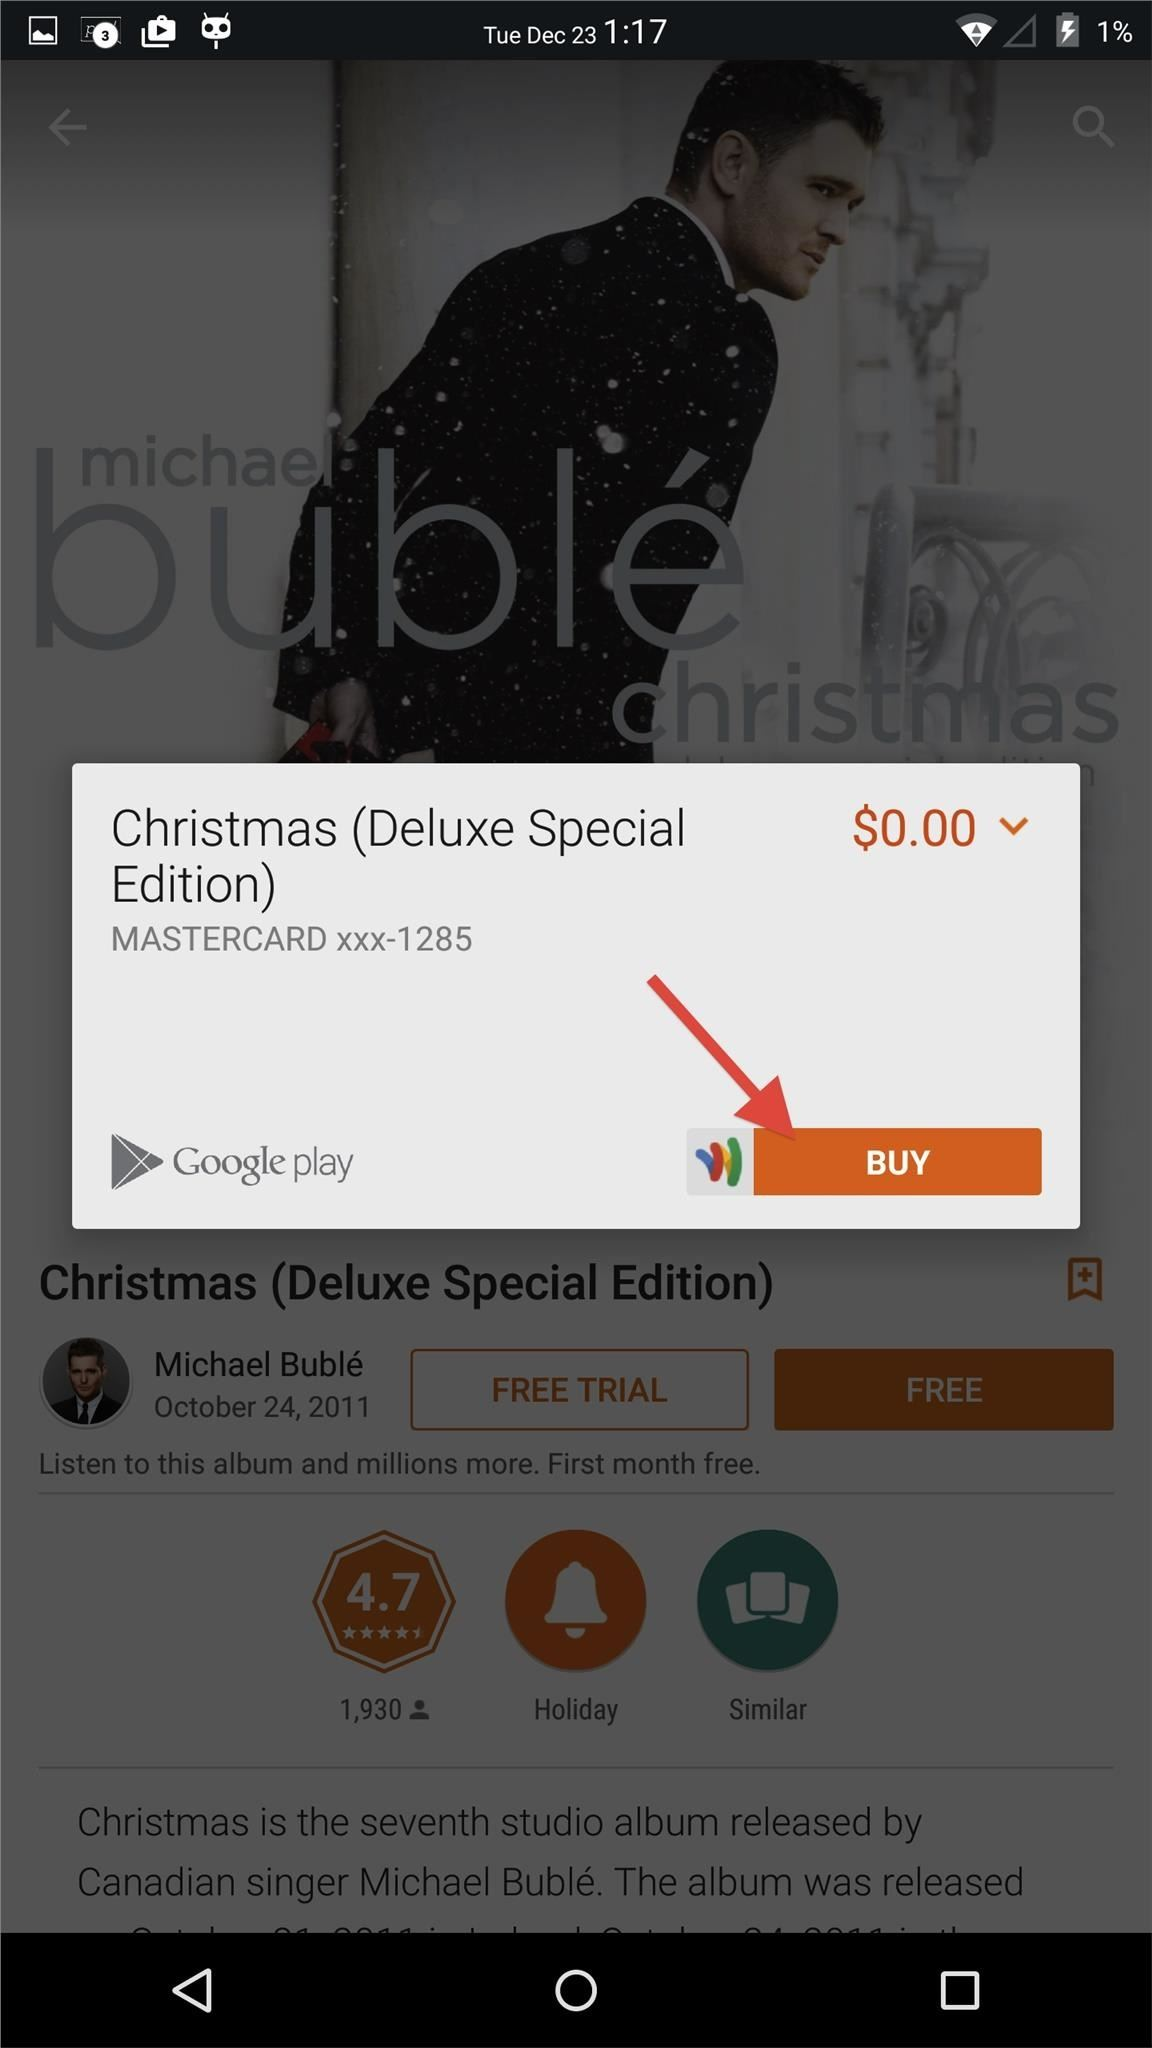 Holiday Freebie: Michael Bublé's Christmas Deluxe Special Edition Album